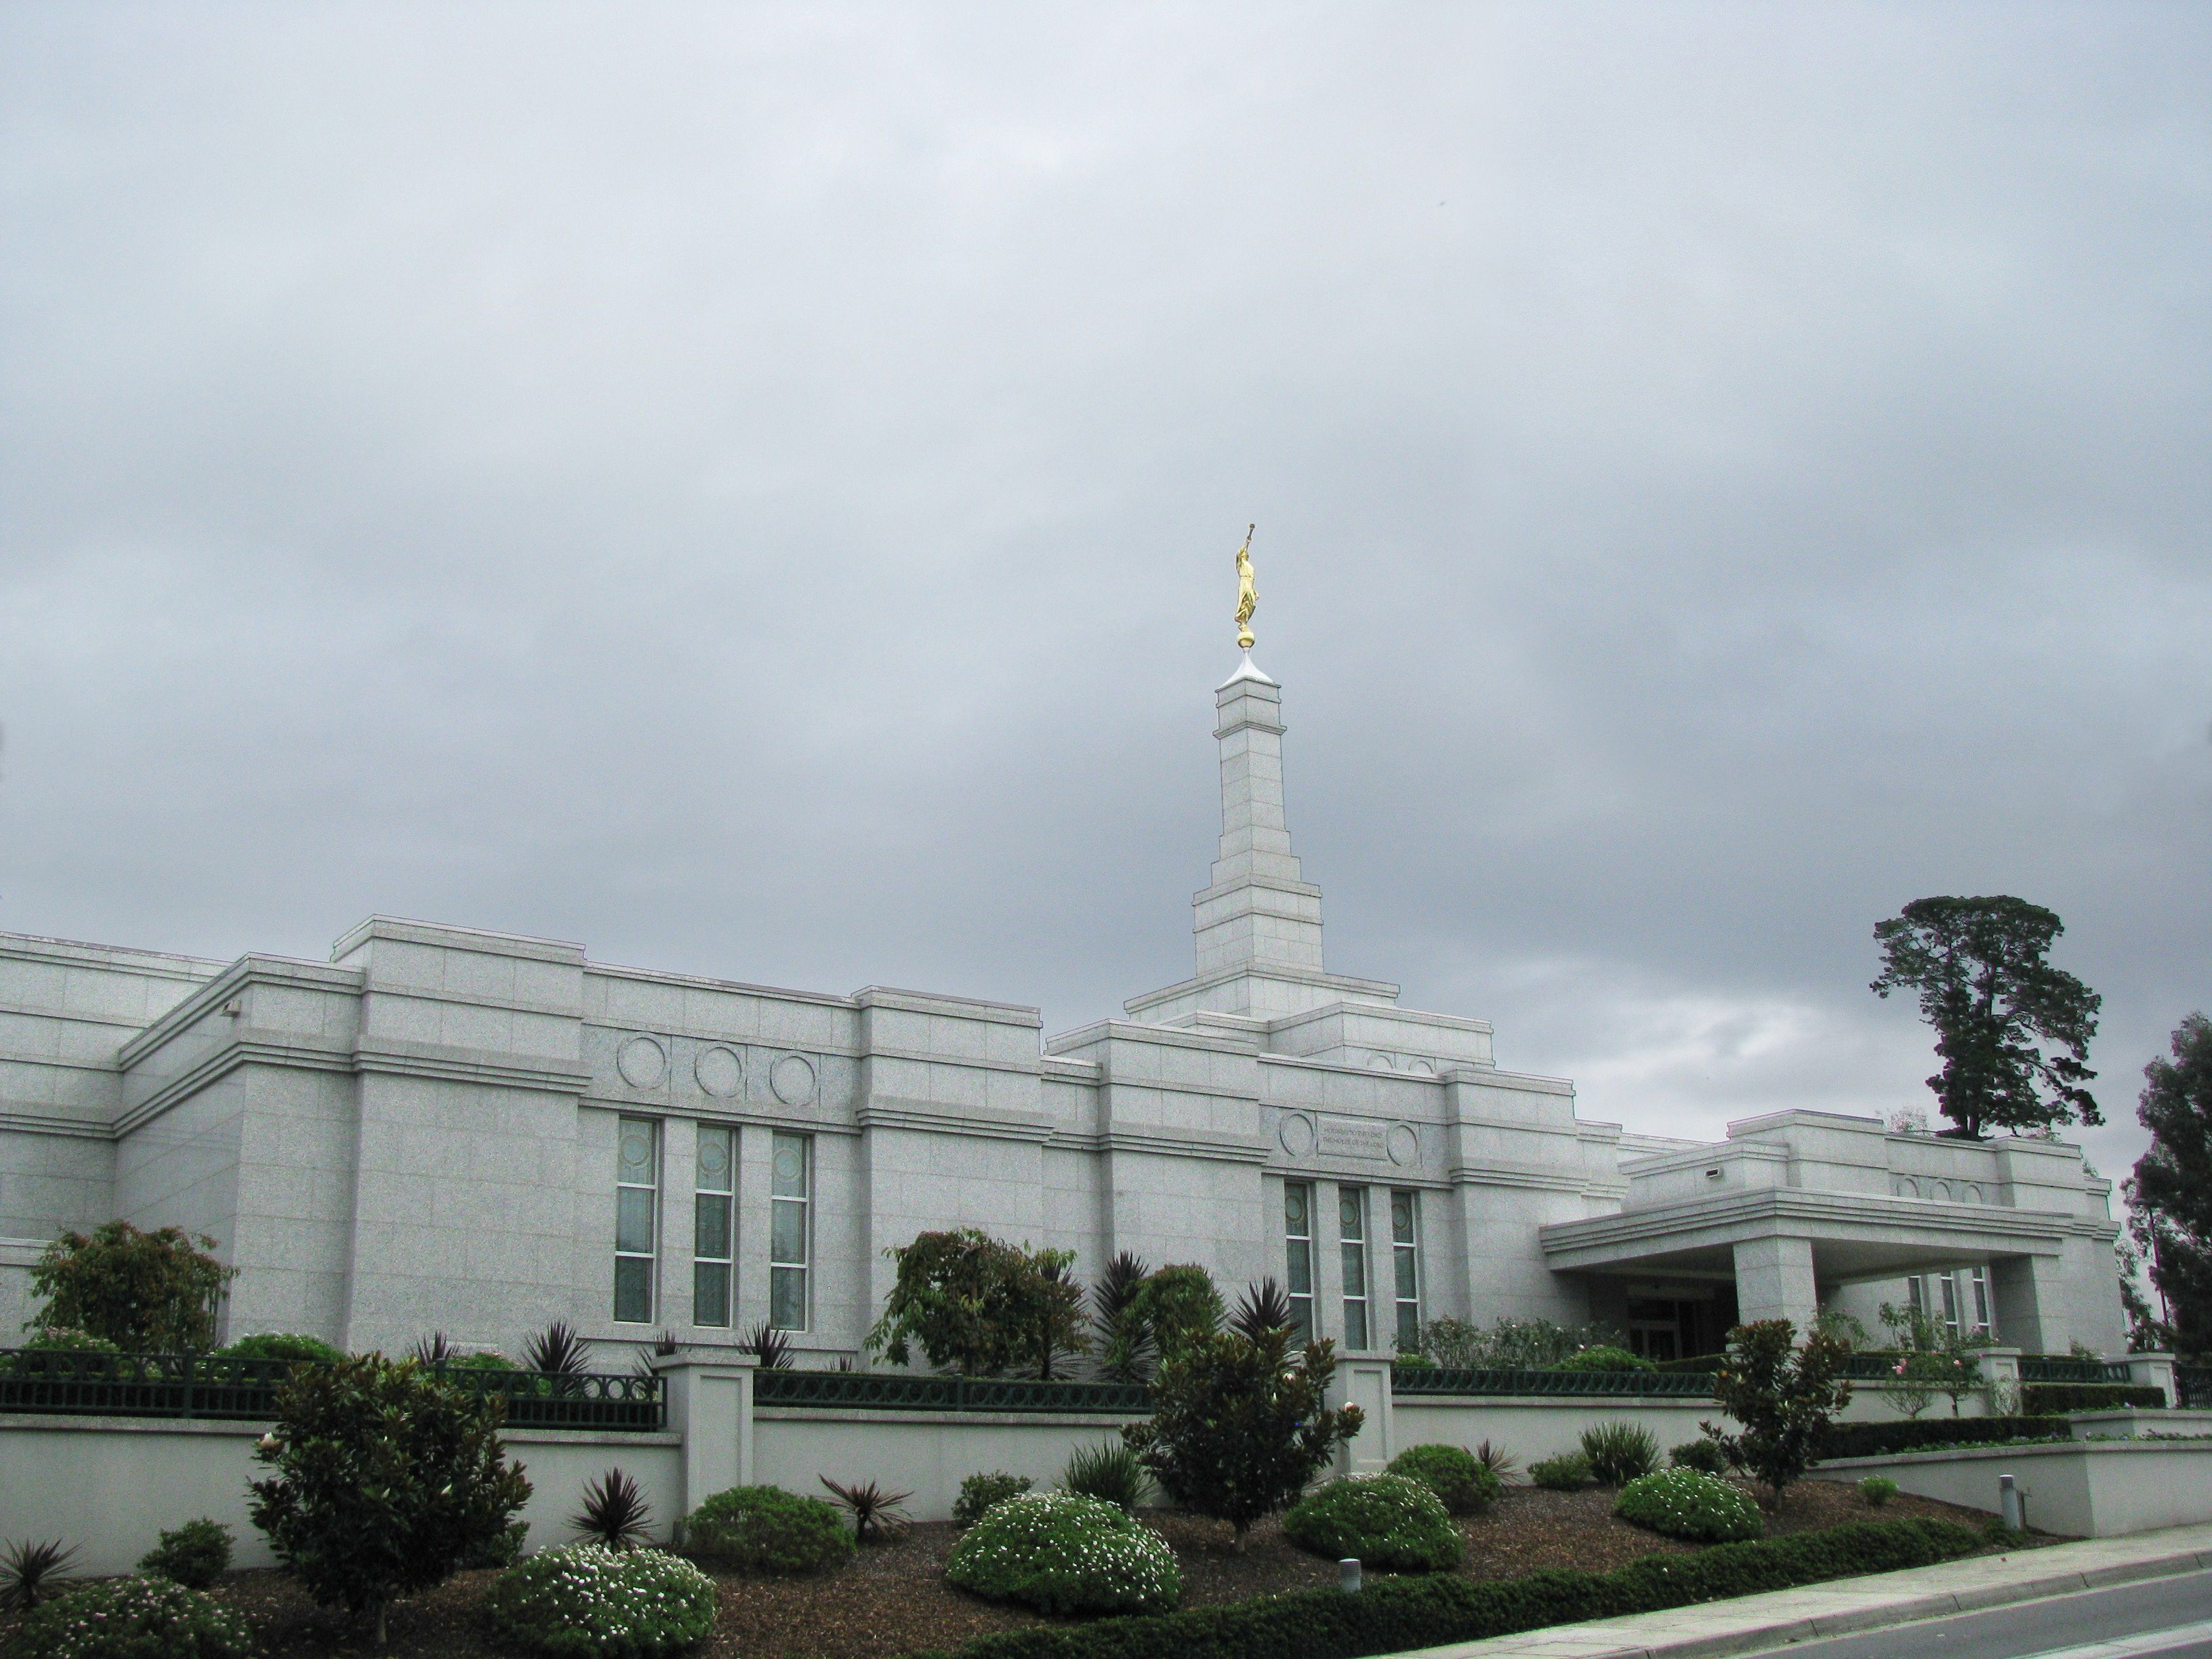 The Melbourne Australia Temple on a cloudy day.